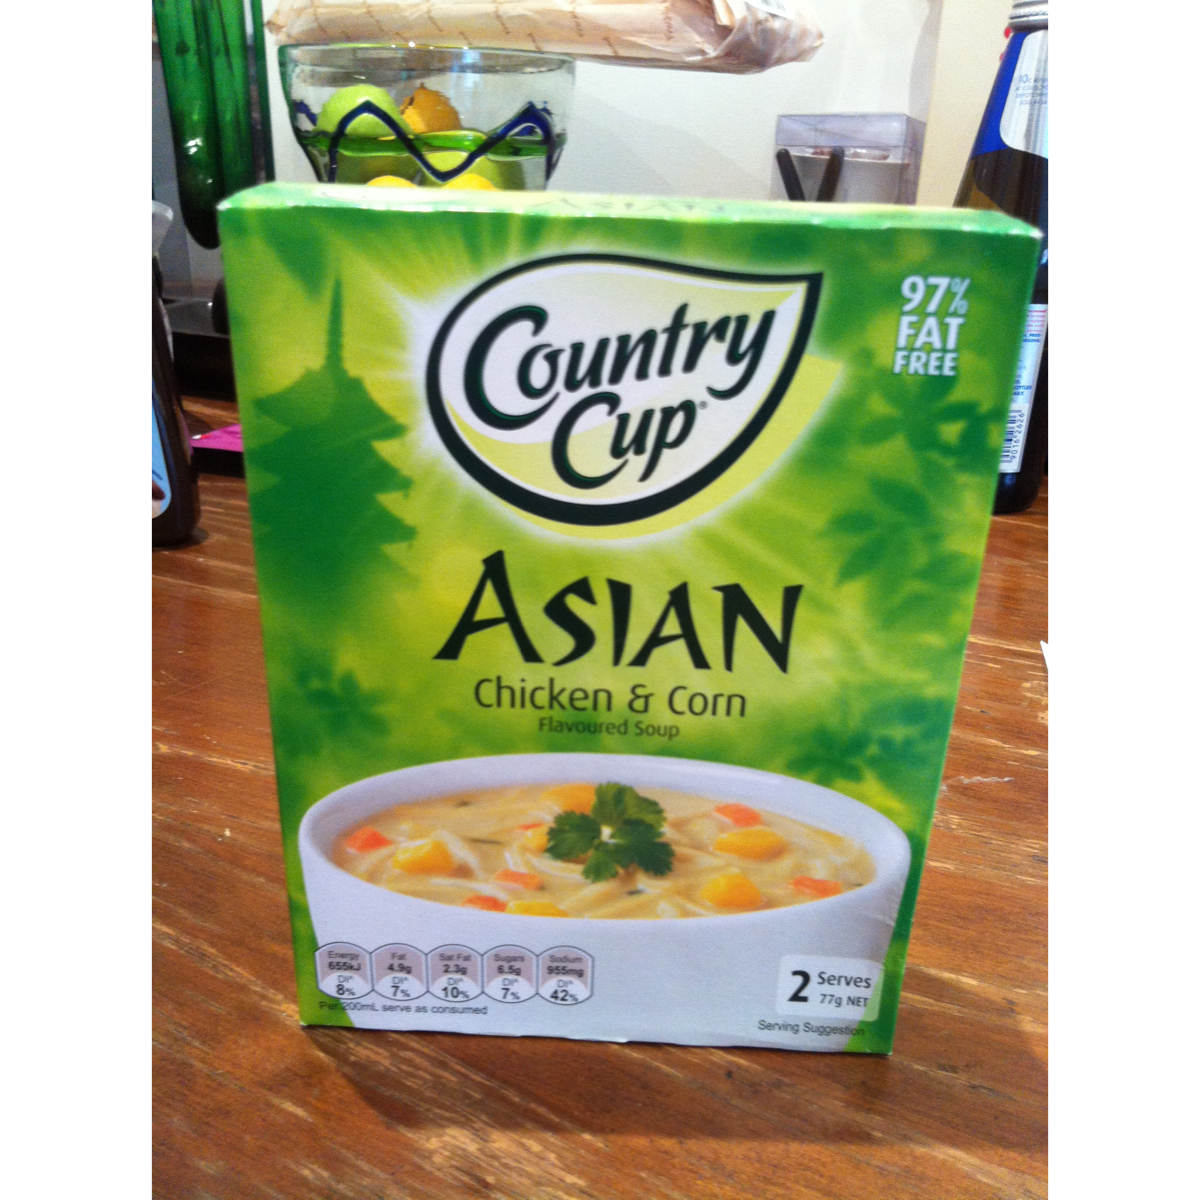 Country Cup Asian Chicken & Corn Soup